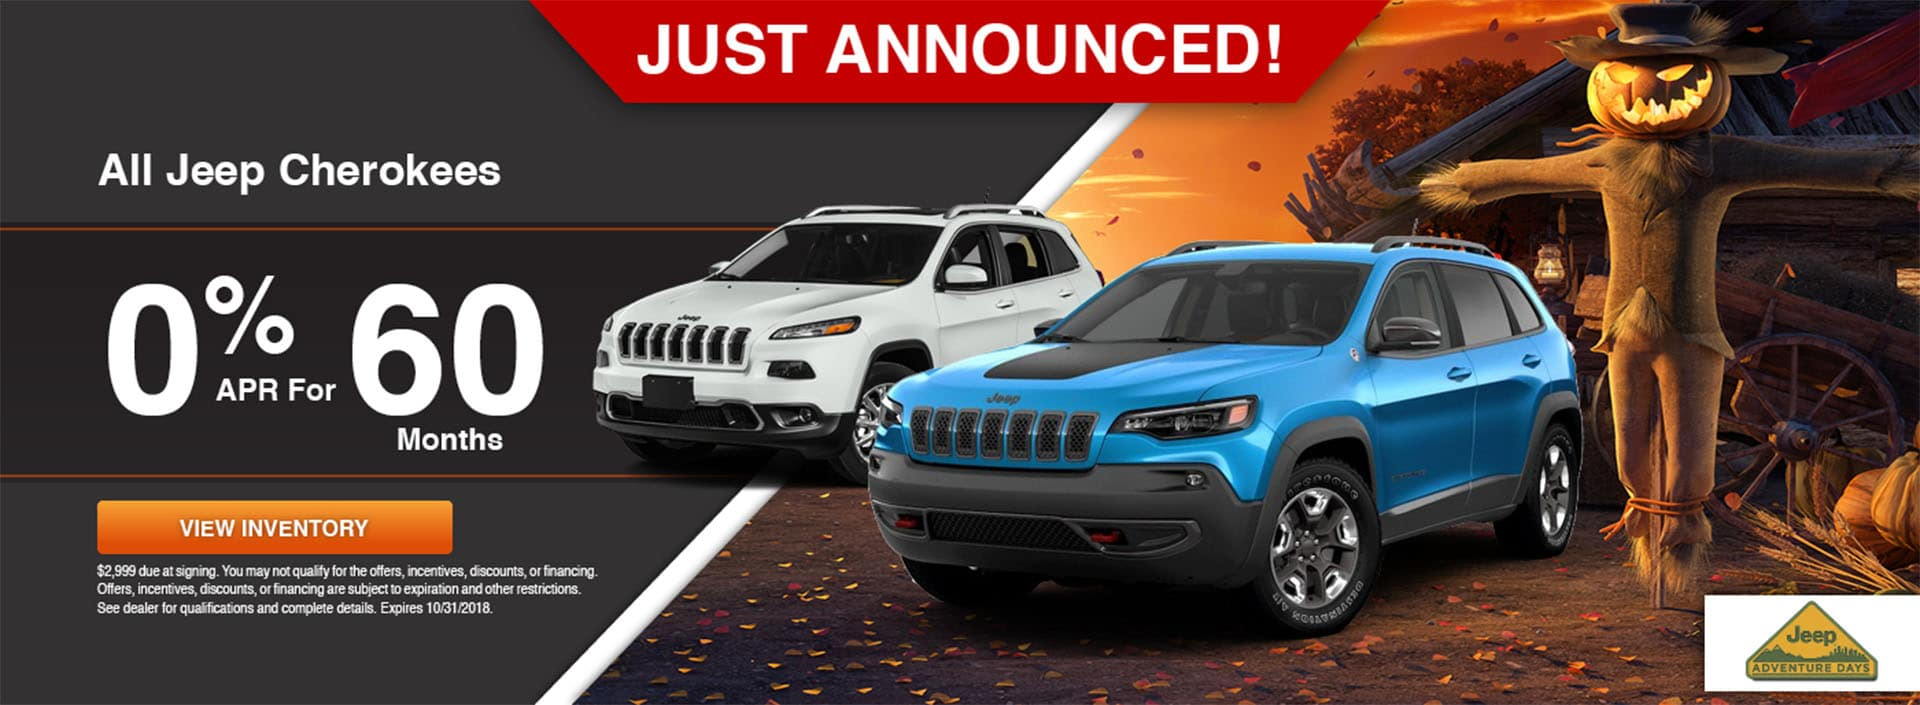 New Jeep Cherokee for Sale in Waseca, MN